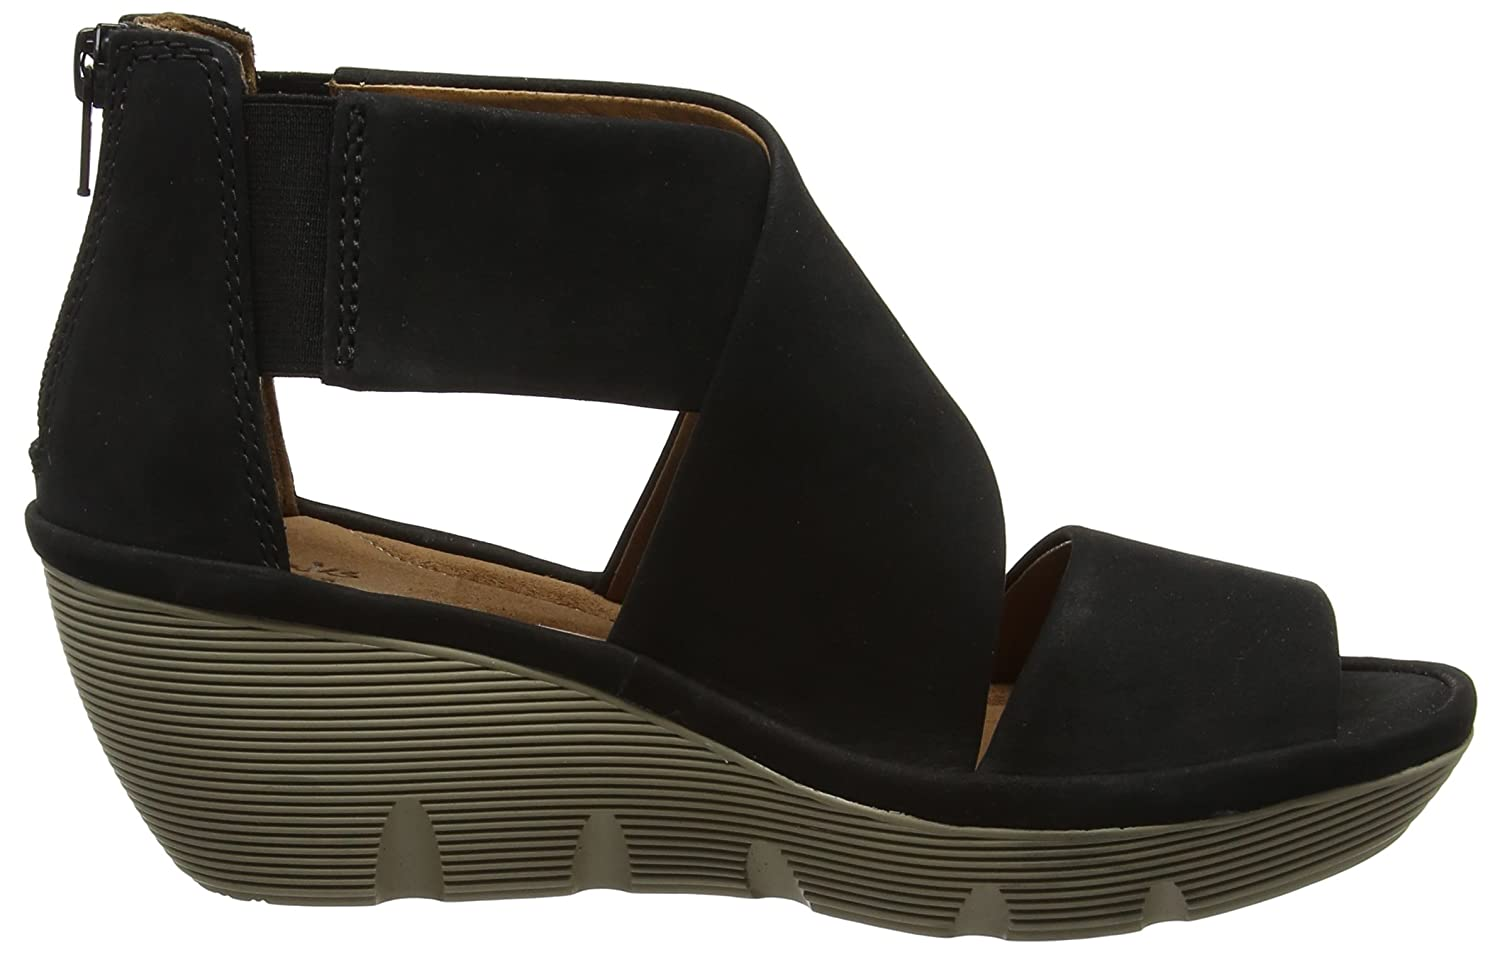 702cc813c9bc Clarks Women s Clarene Glamor Black Leather Fashion Sandals - 5.5 UK India ( 39 EU)  Buy Online at Low Prices in India - Amazon.in